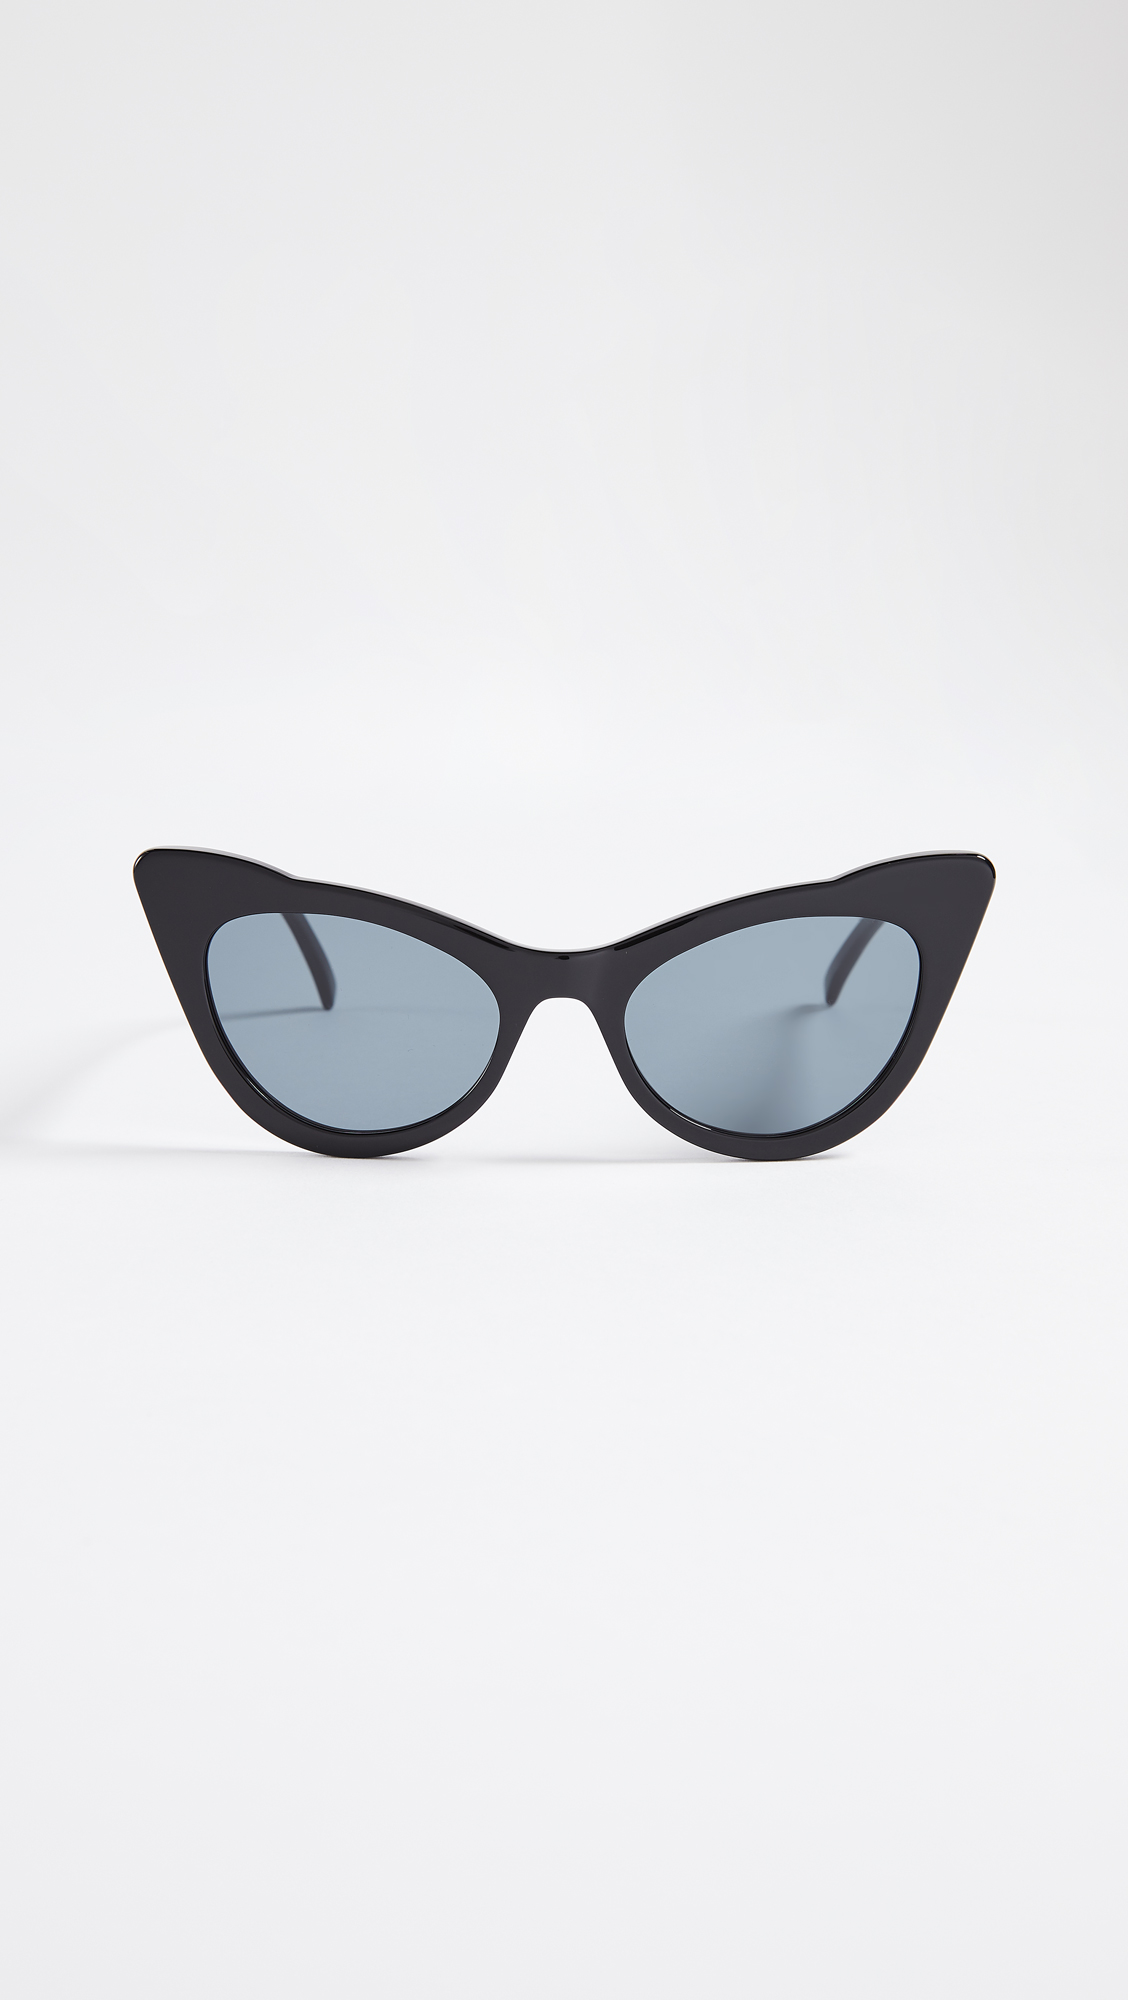 Cateye Sun Glasses